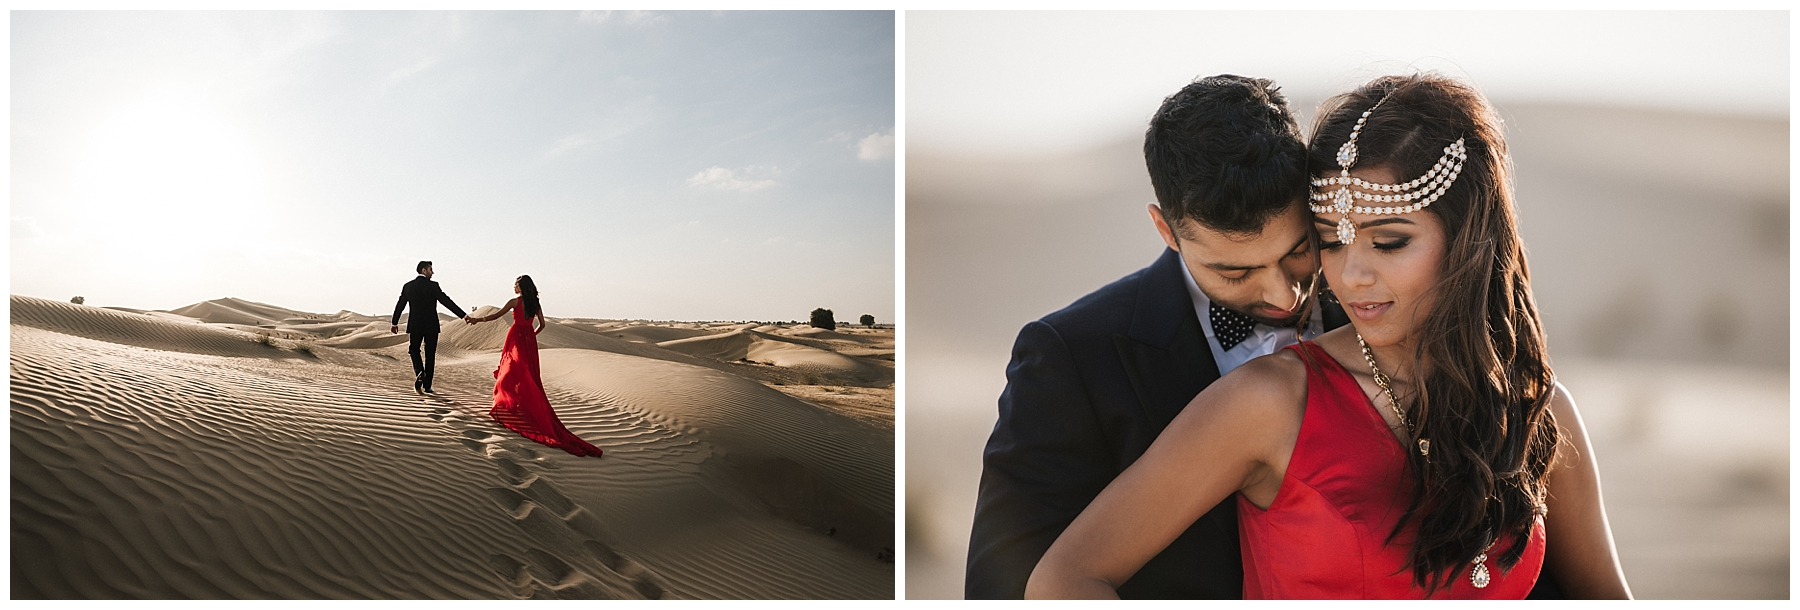 dubai wedding photographer, desert engagement shoot